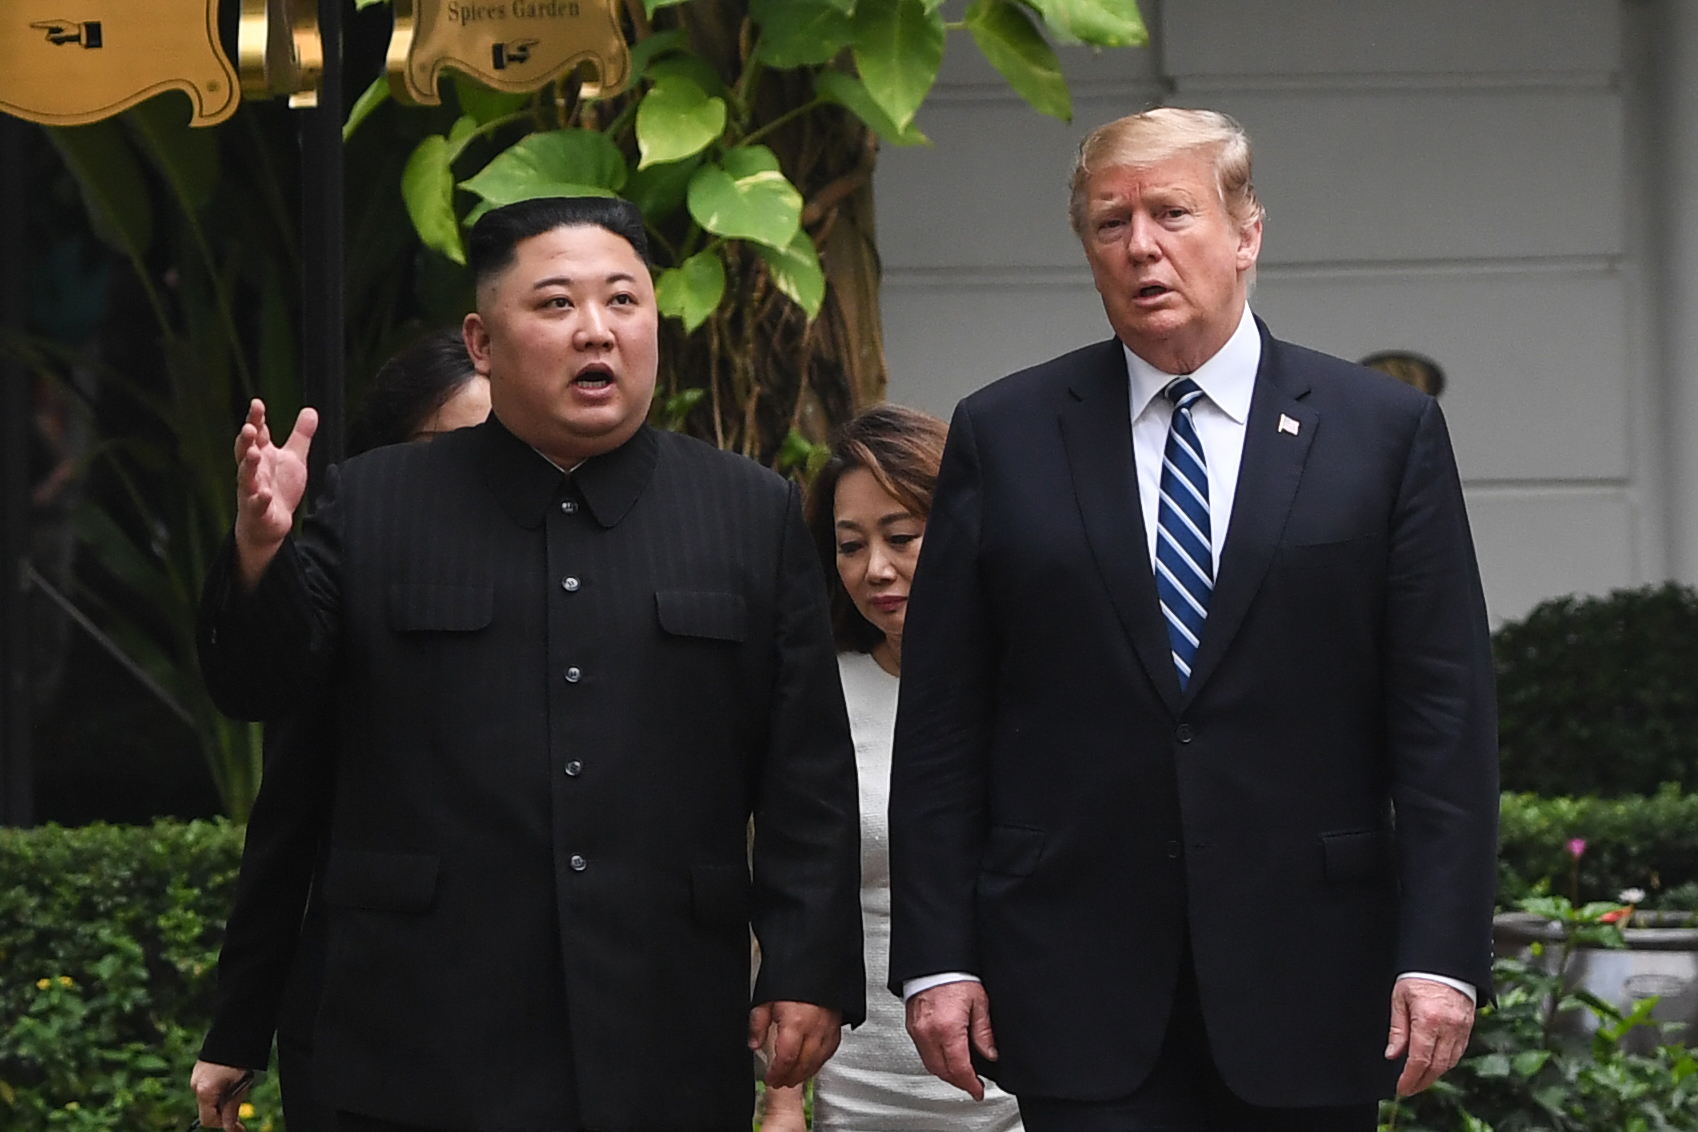 US President Donald Trump (R) walks with North Korea's leader Kim Jong Un during a break in talks at the second US-North Korea summit at the Sofitel Legend Metropole hotel in Hanoi on February 28, 2019. (Photo by Saul LOEB / AFP) (Photo credit should read SAUL LOEB/AFP/Getty Images)